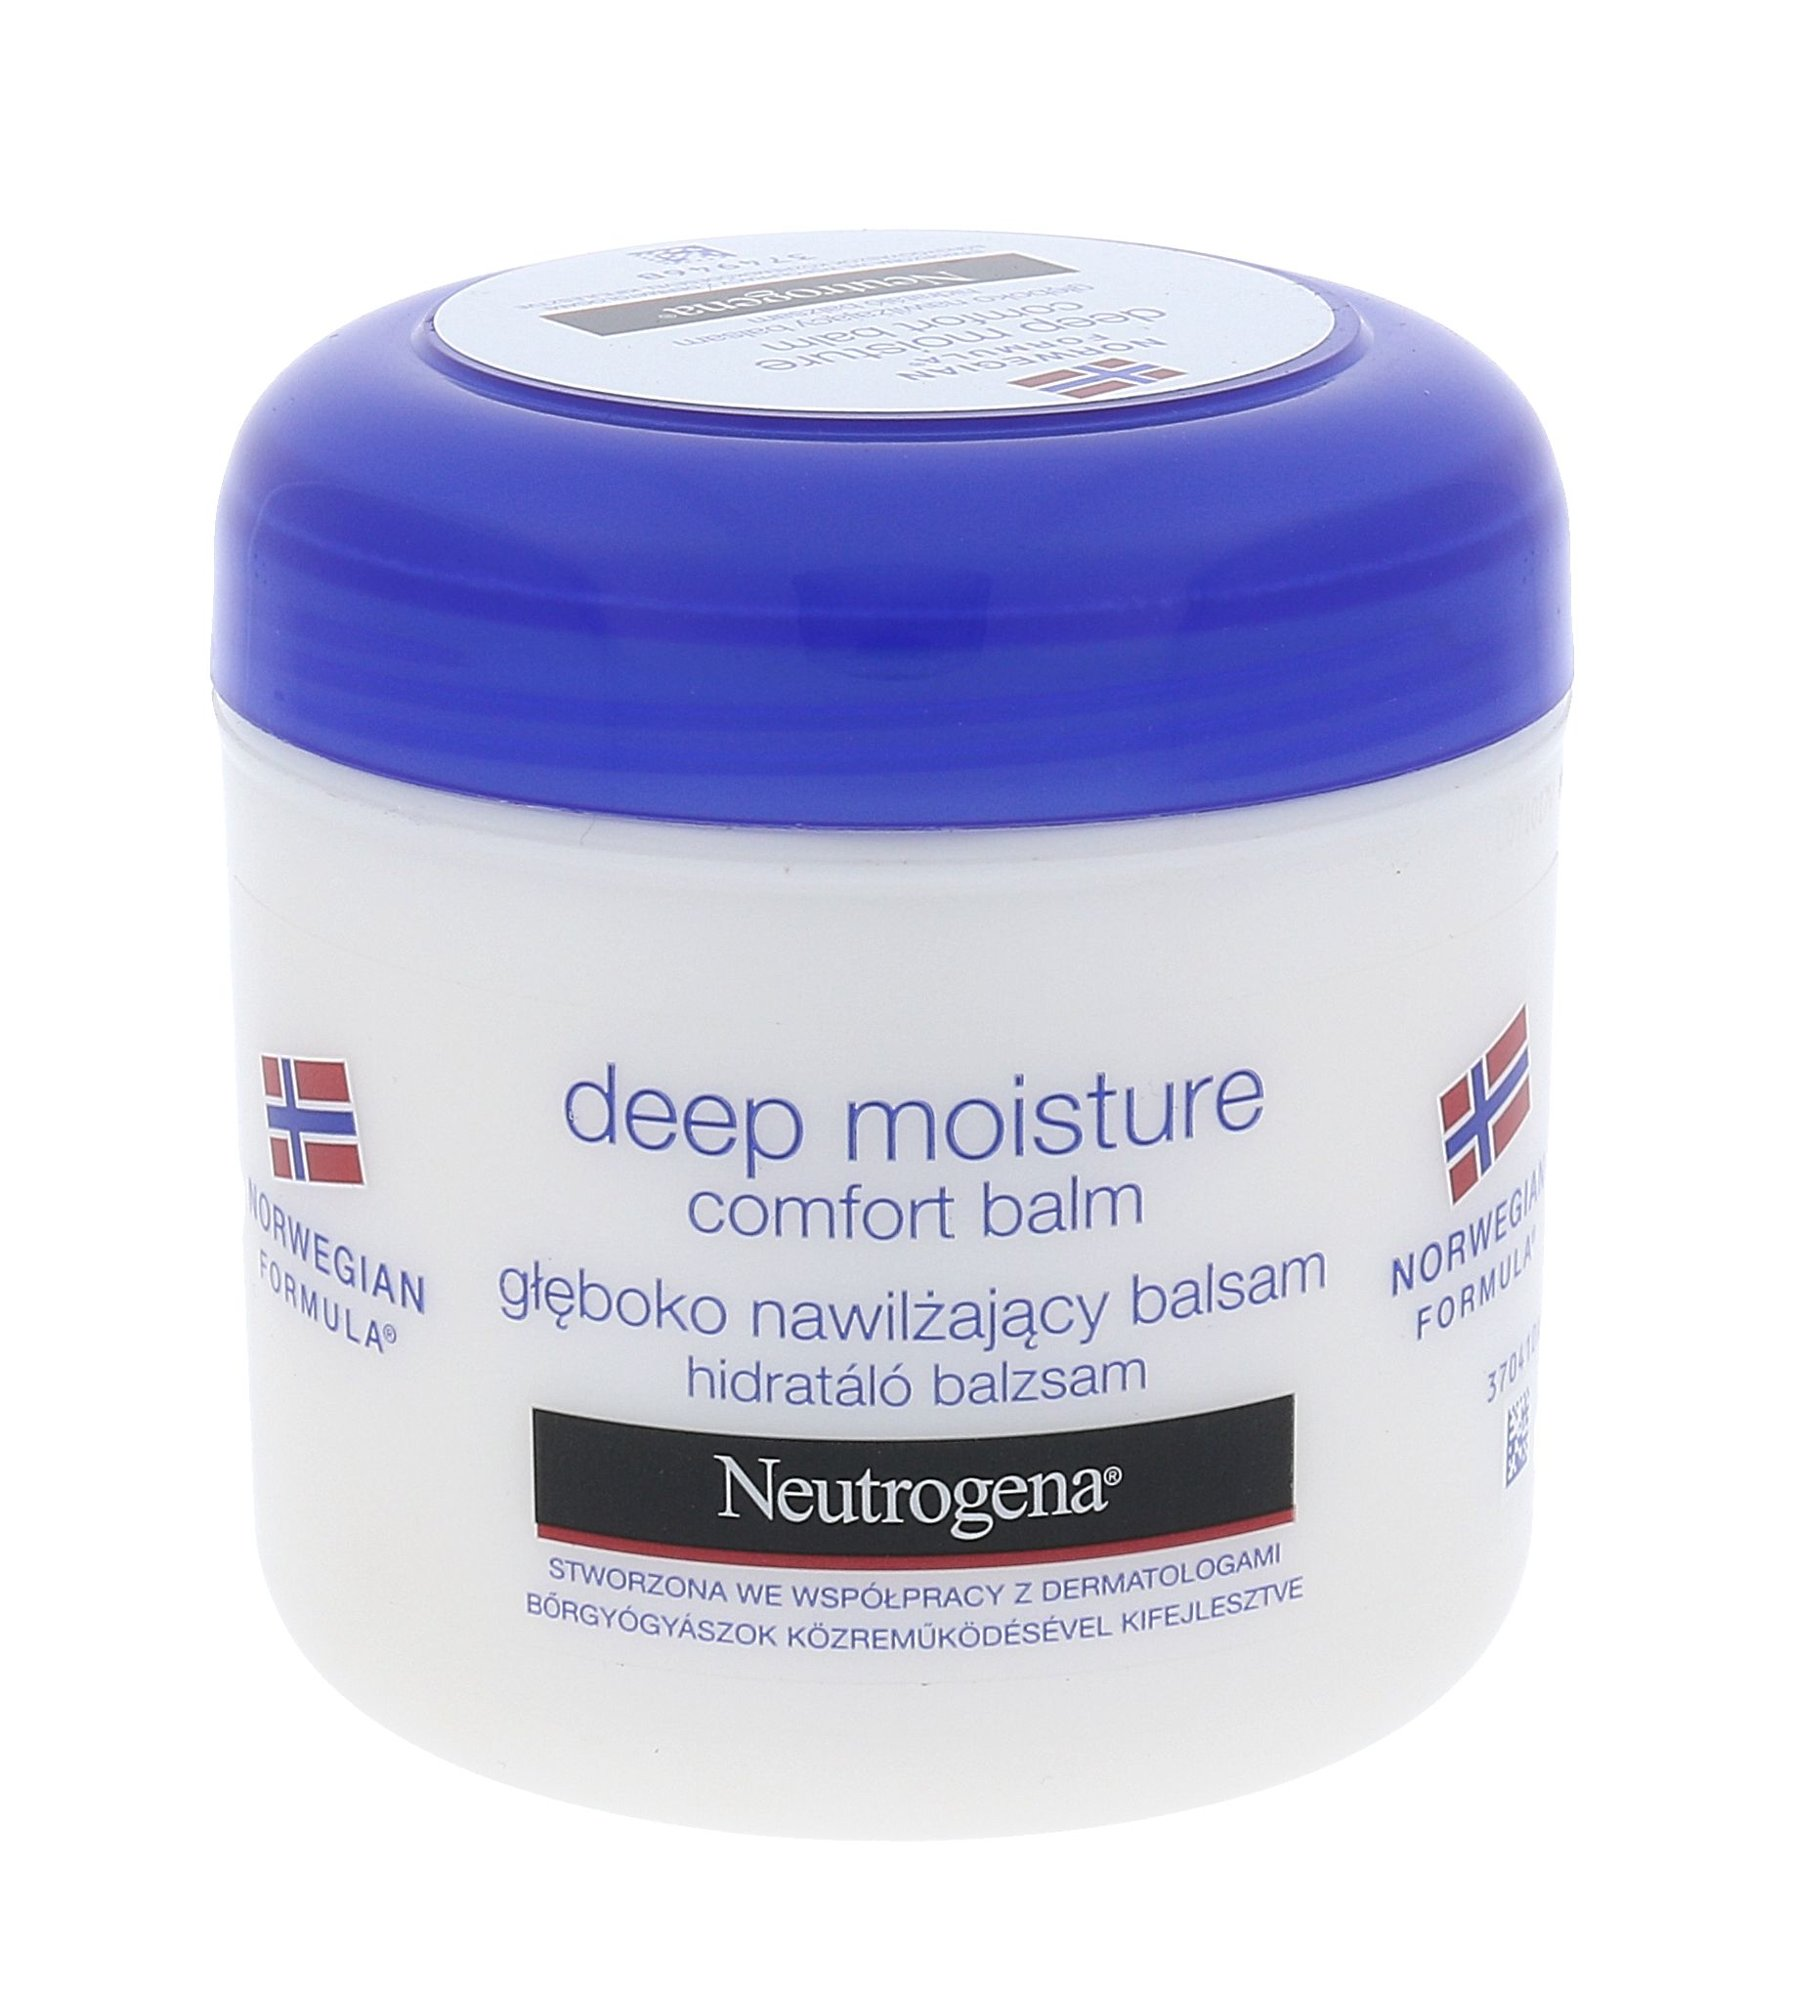 Neutrogena Norwegian Formula Cosmetic 300ml  Deep Moisture